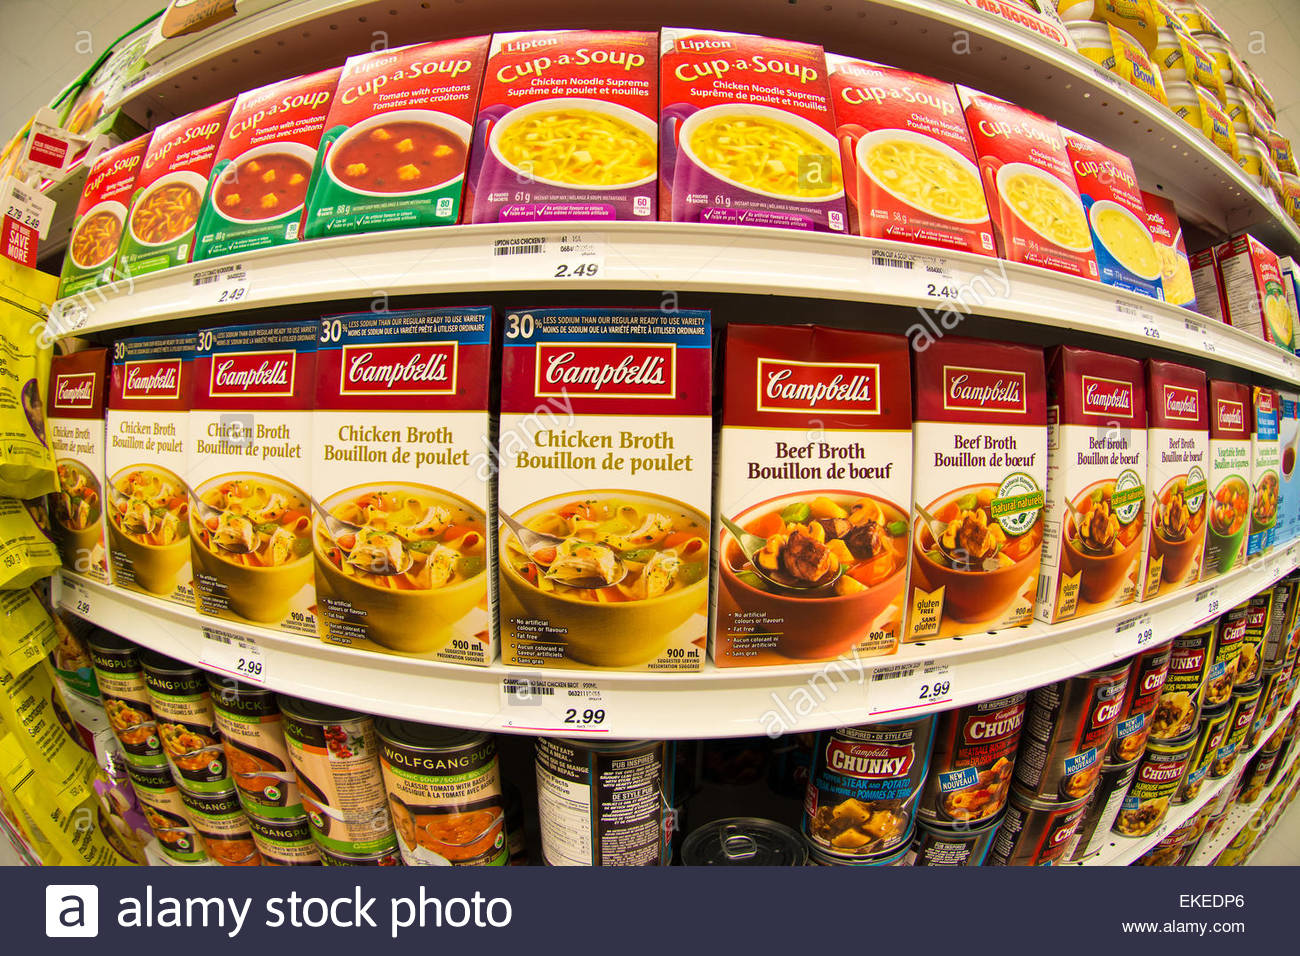 Image result for canned soup